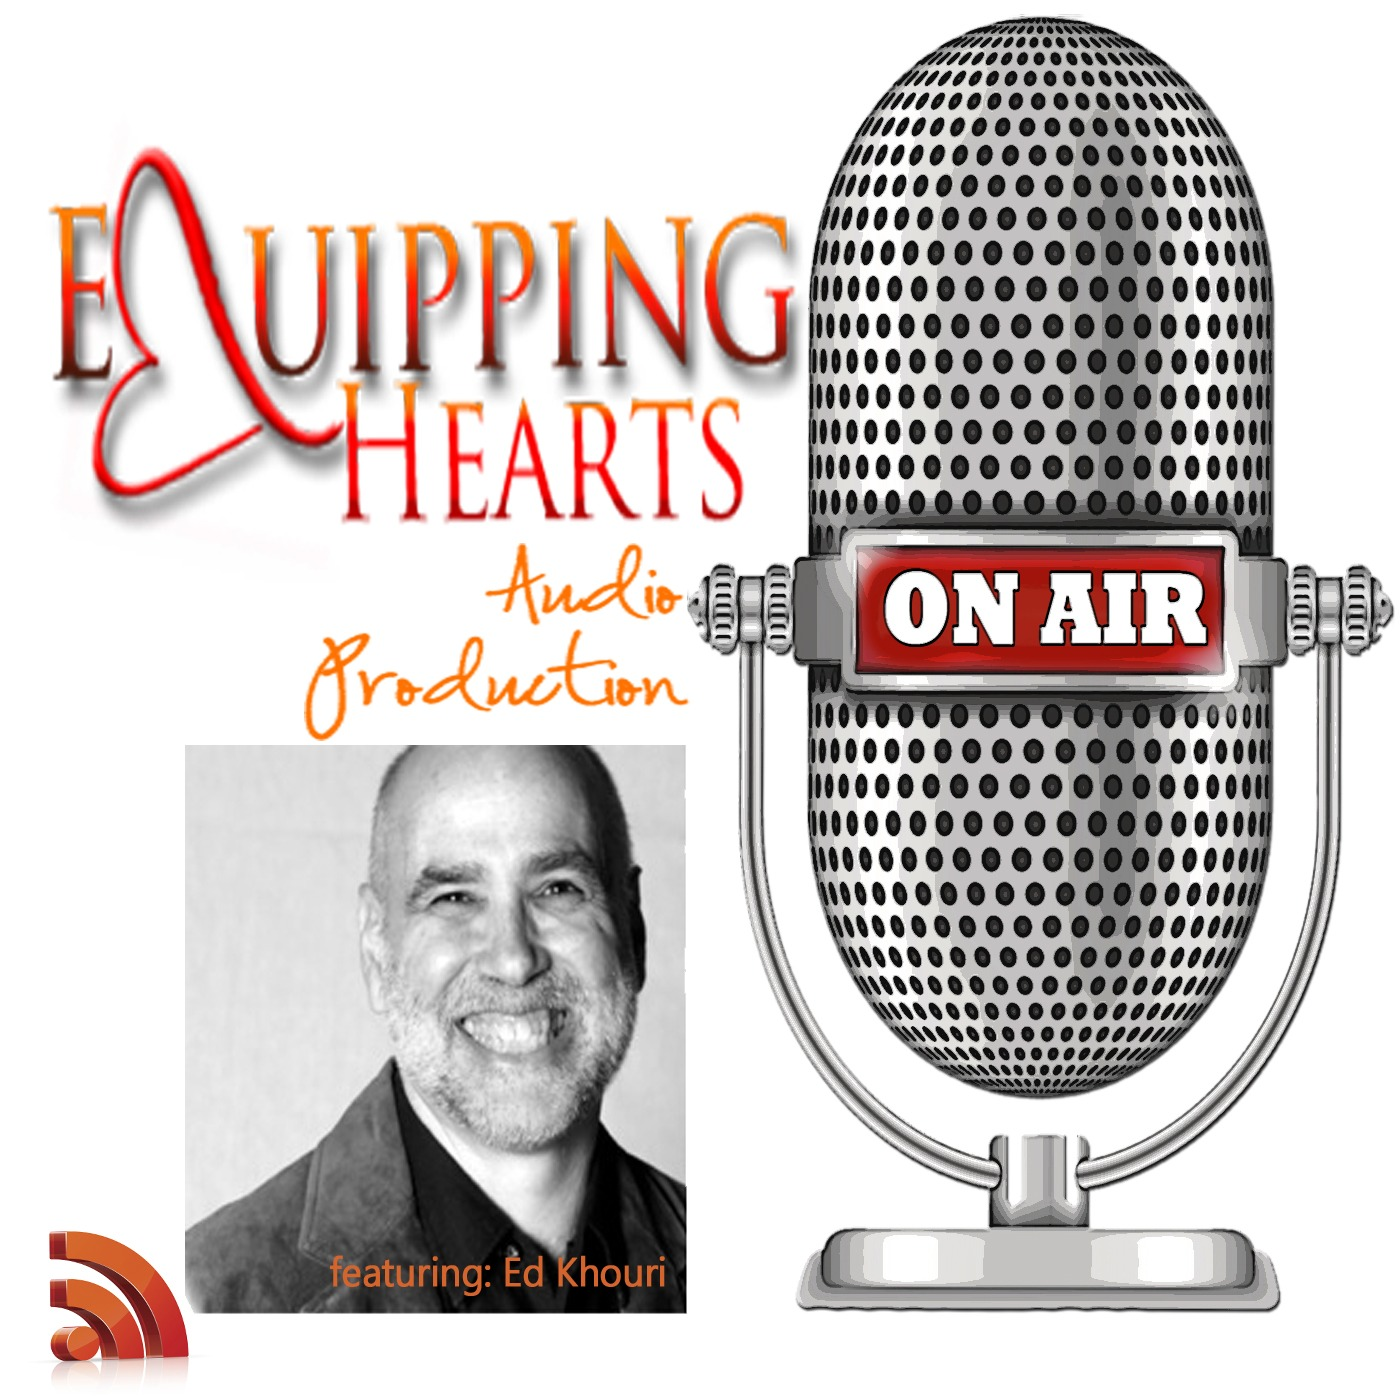 Equipping Hearts Audio Productions with Ed Khouri